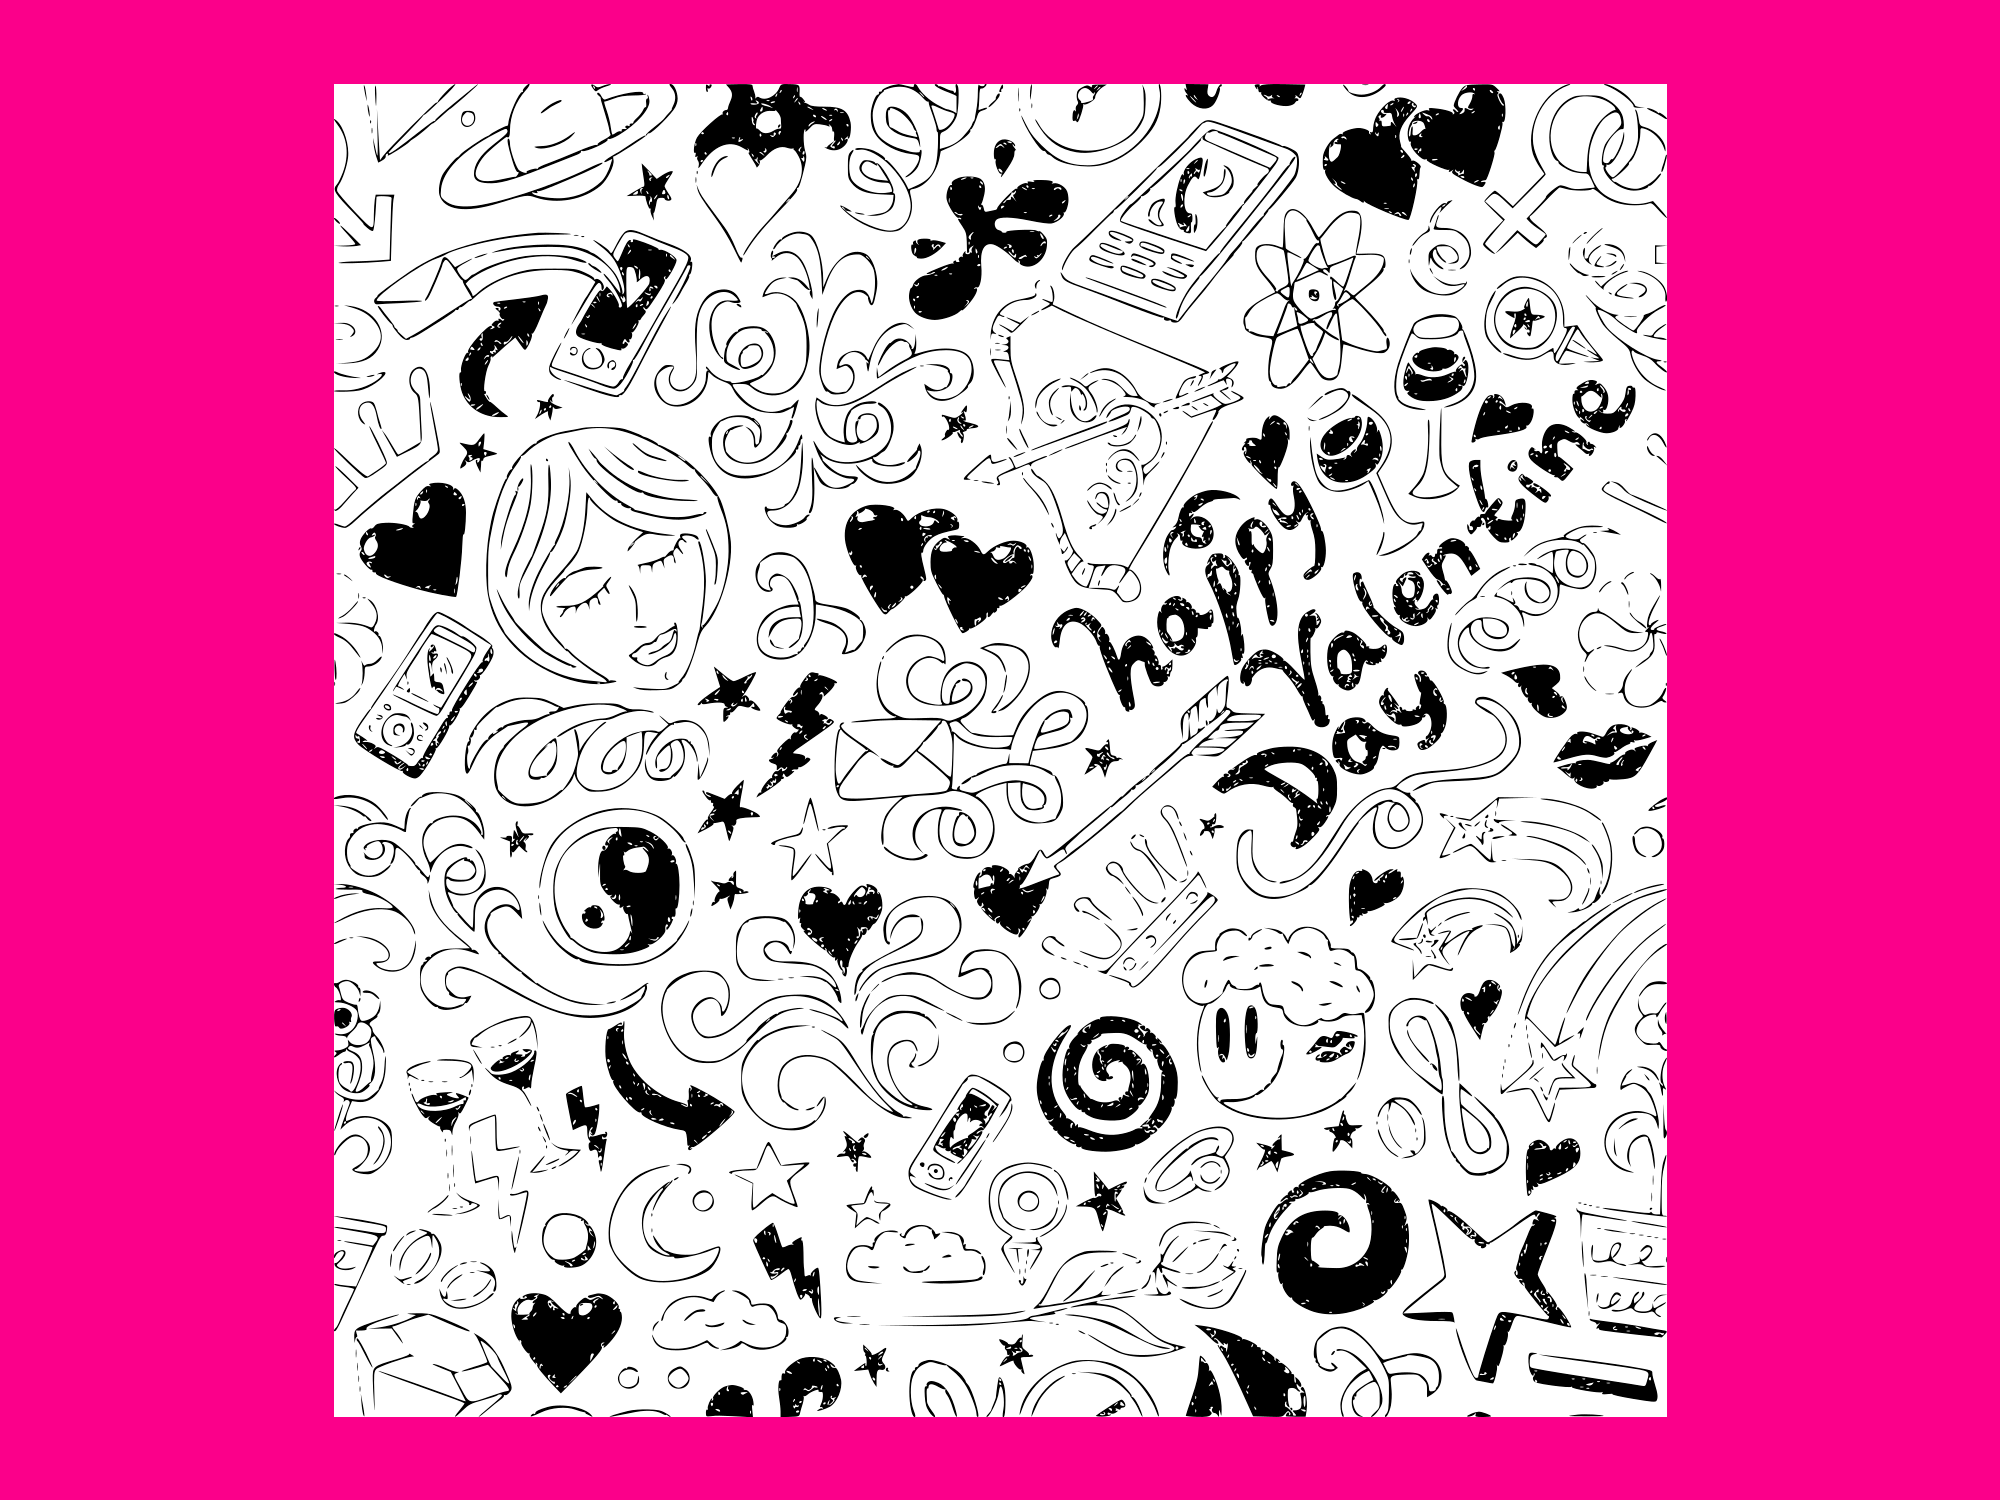 Download Free Lovevalentine Day Doodles Collection Vec Grafico Por Anrasoft for Cricut Explore, Silhouette and other cutting machines.